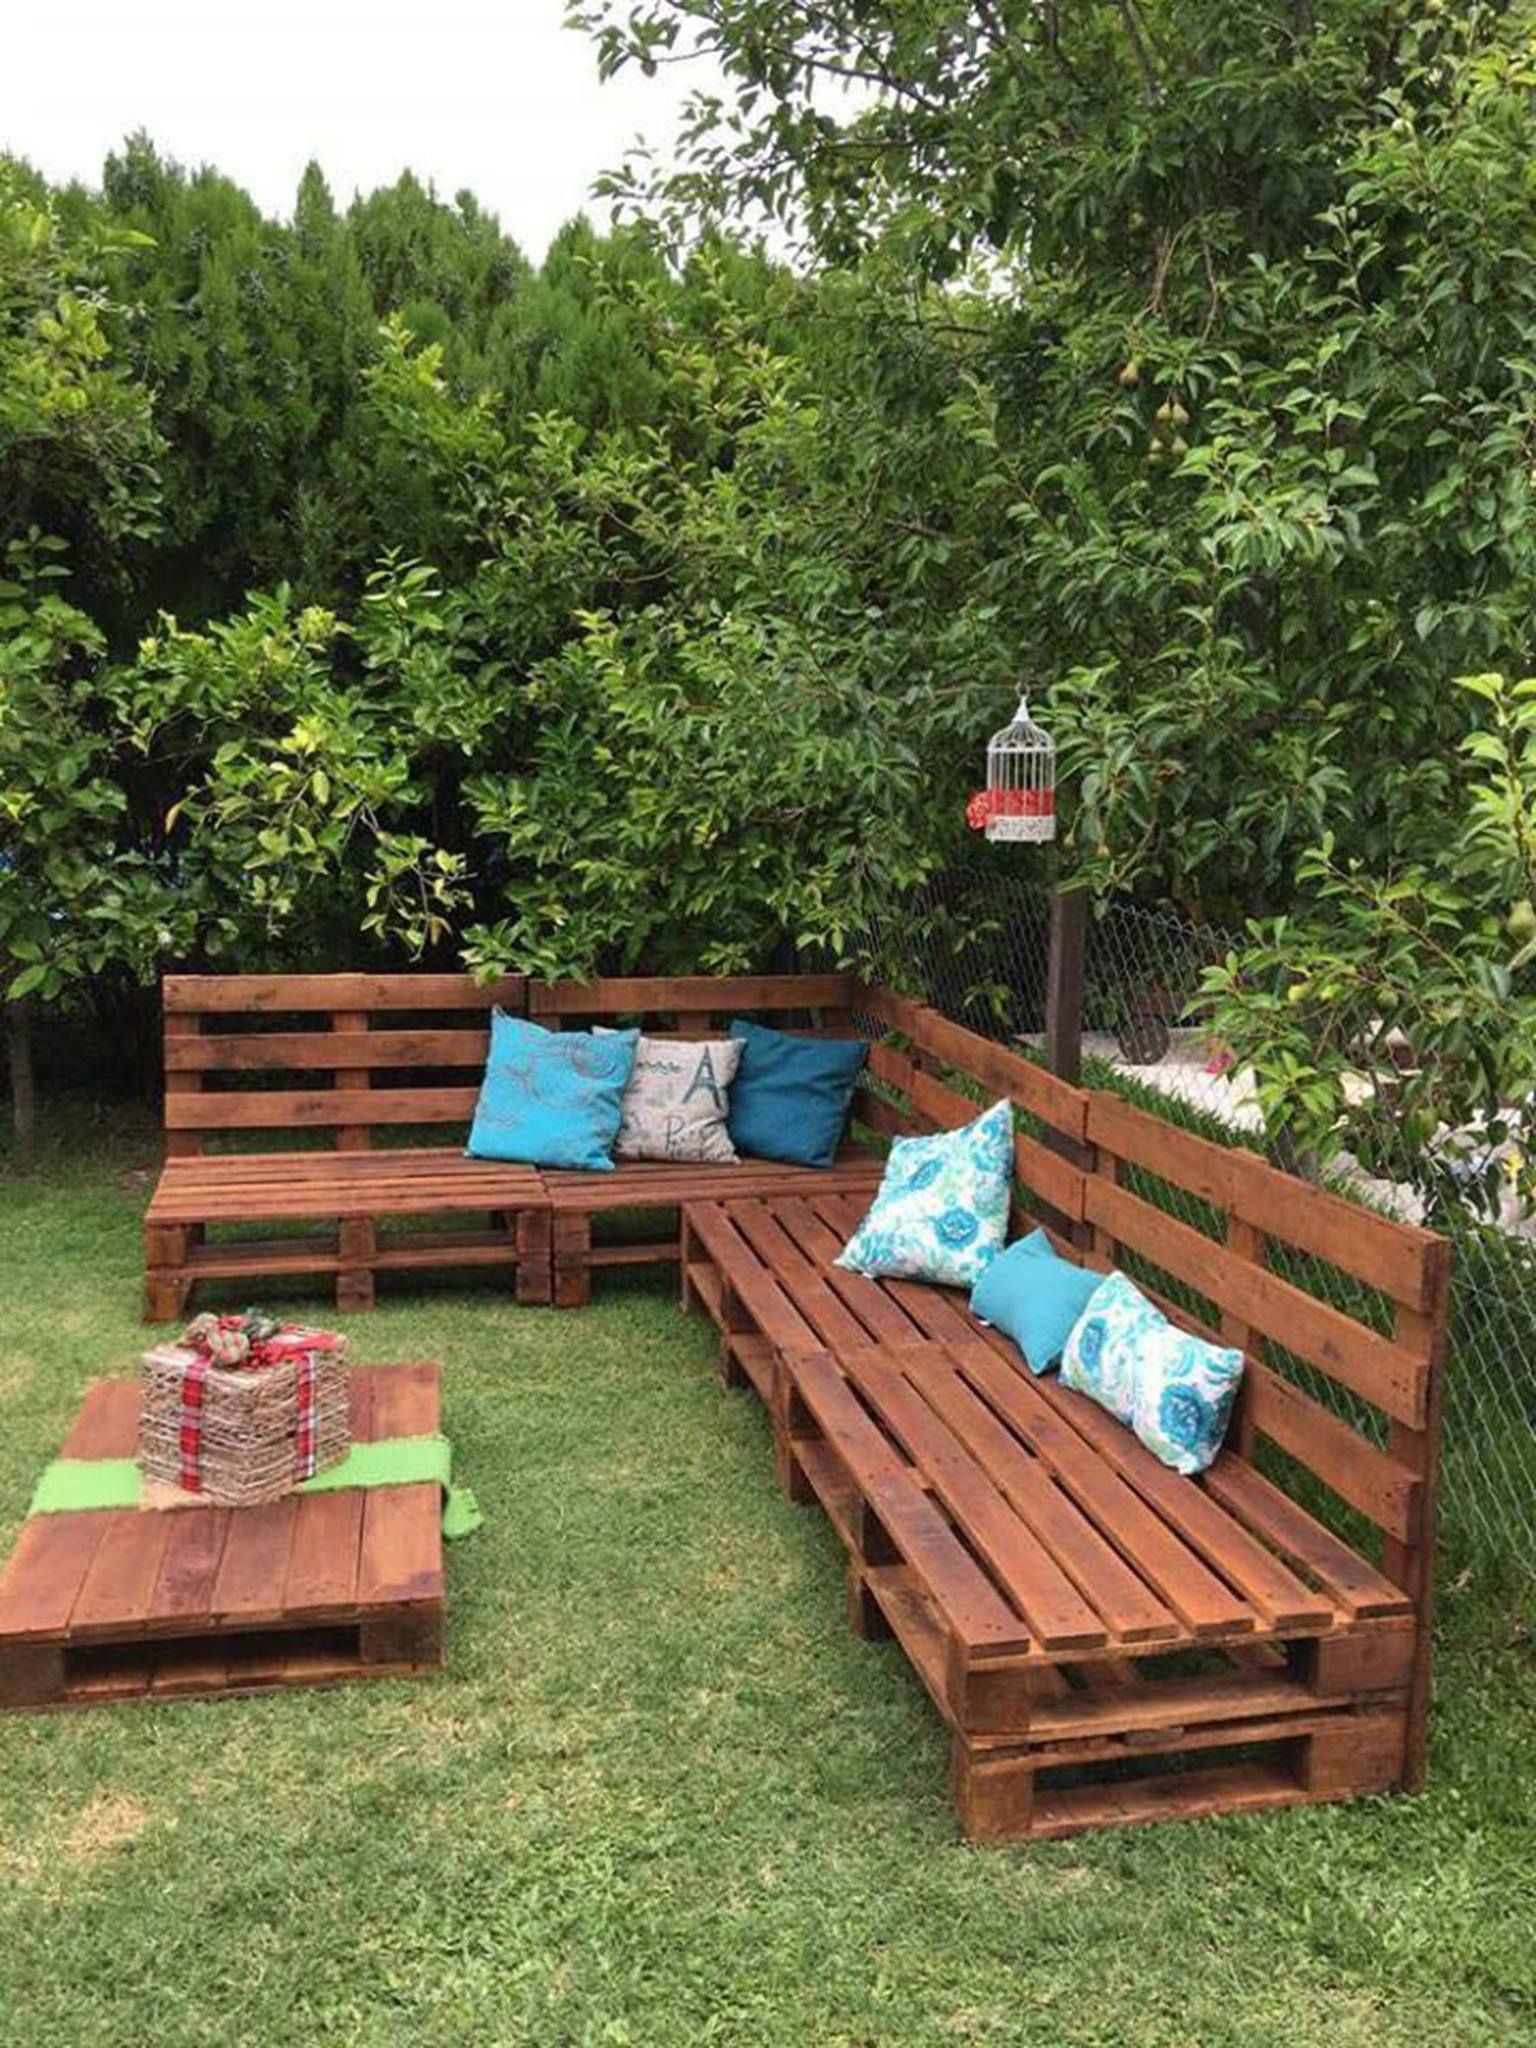 10 Garden Ideas With Pallets Most Brilliant As Well As Stunning